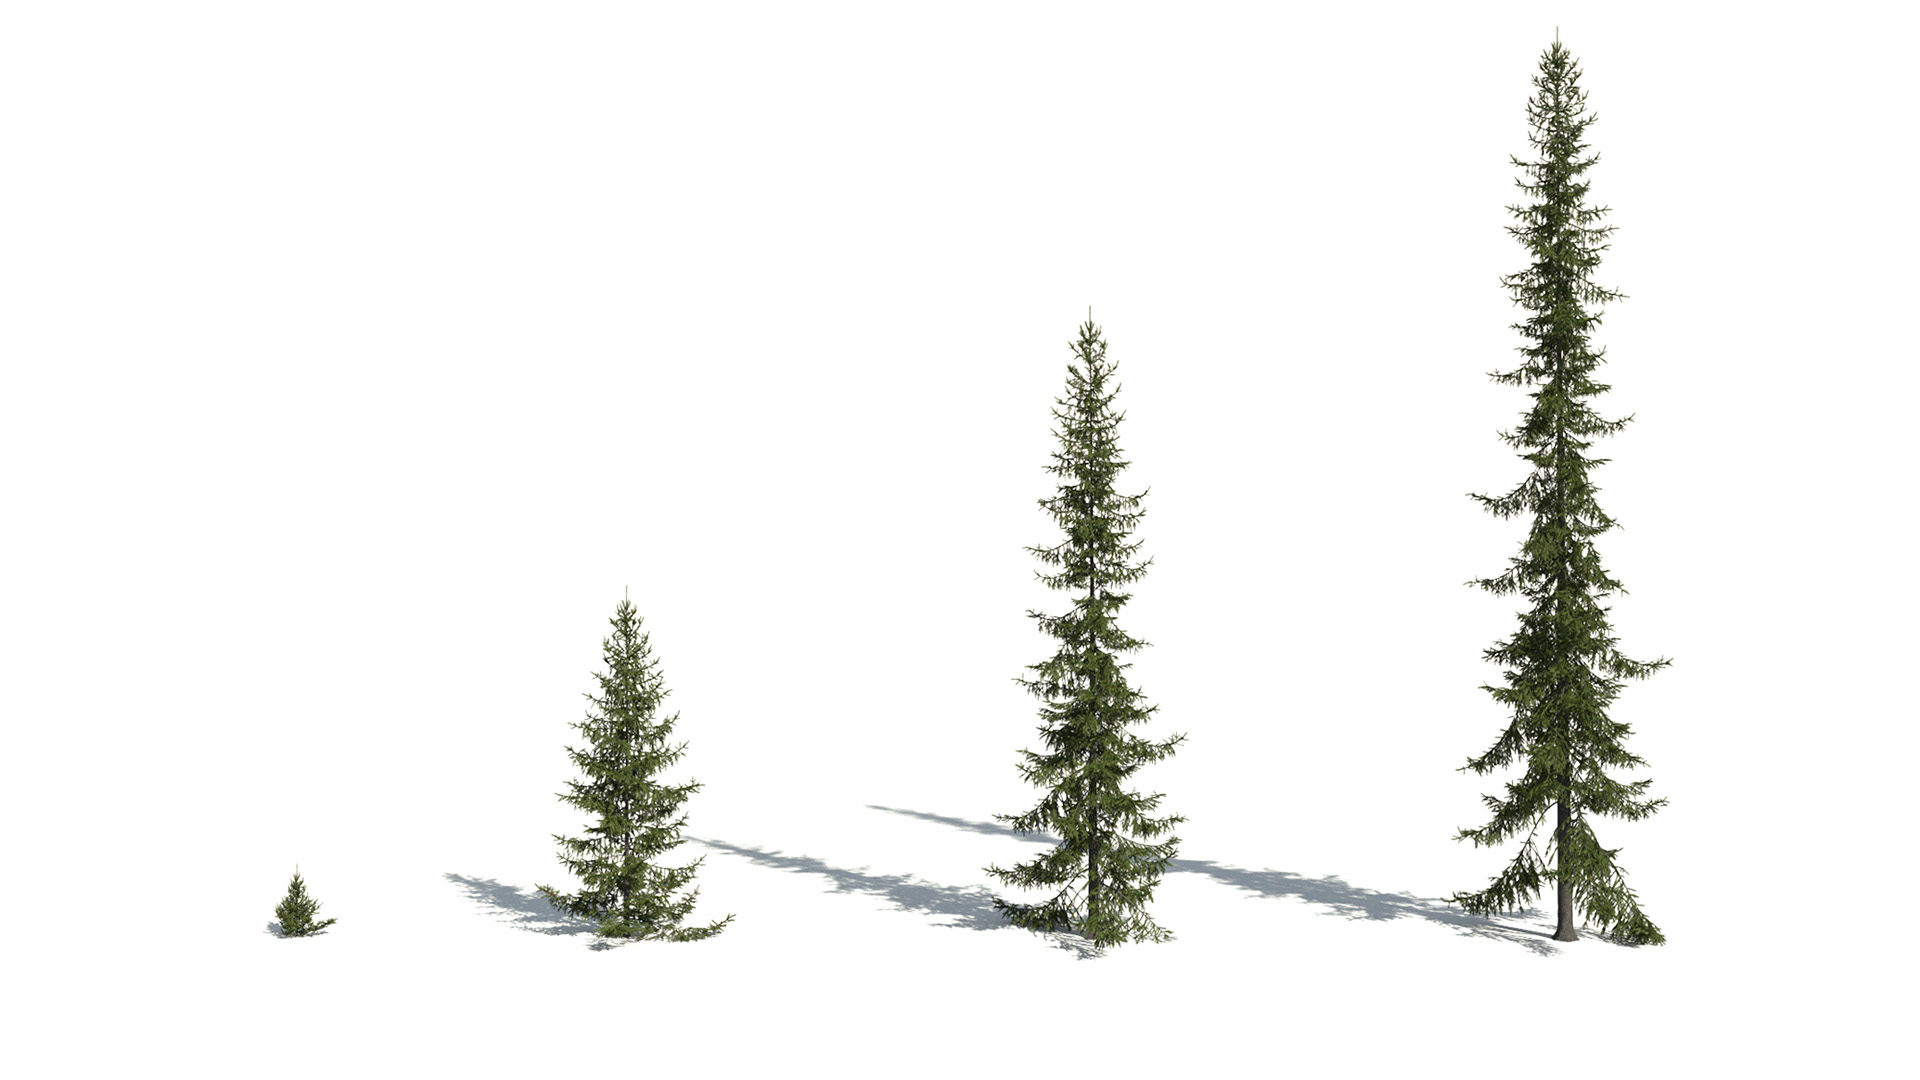 3D model of the Black spruce Picea mariana maturity variations